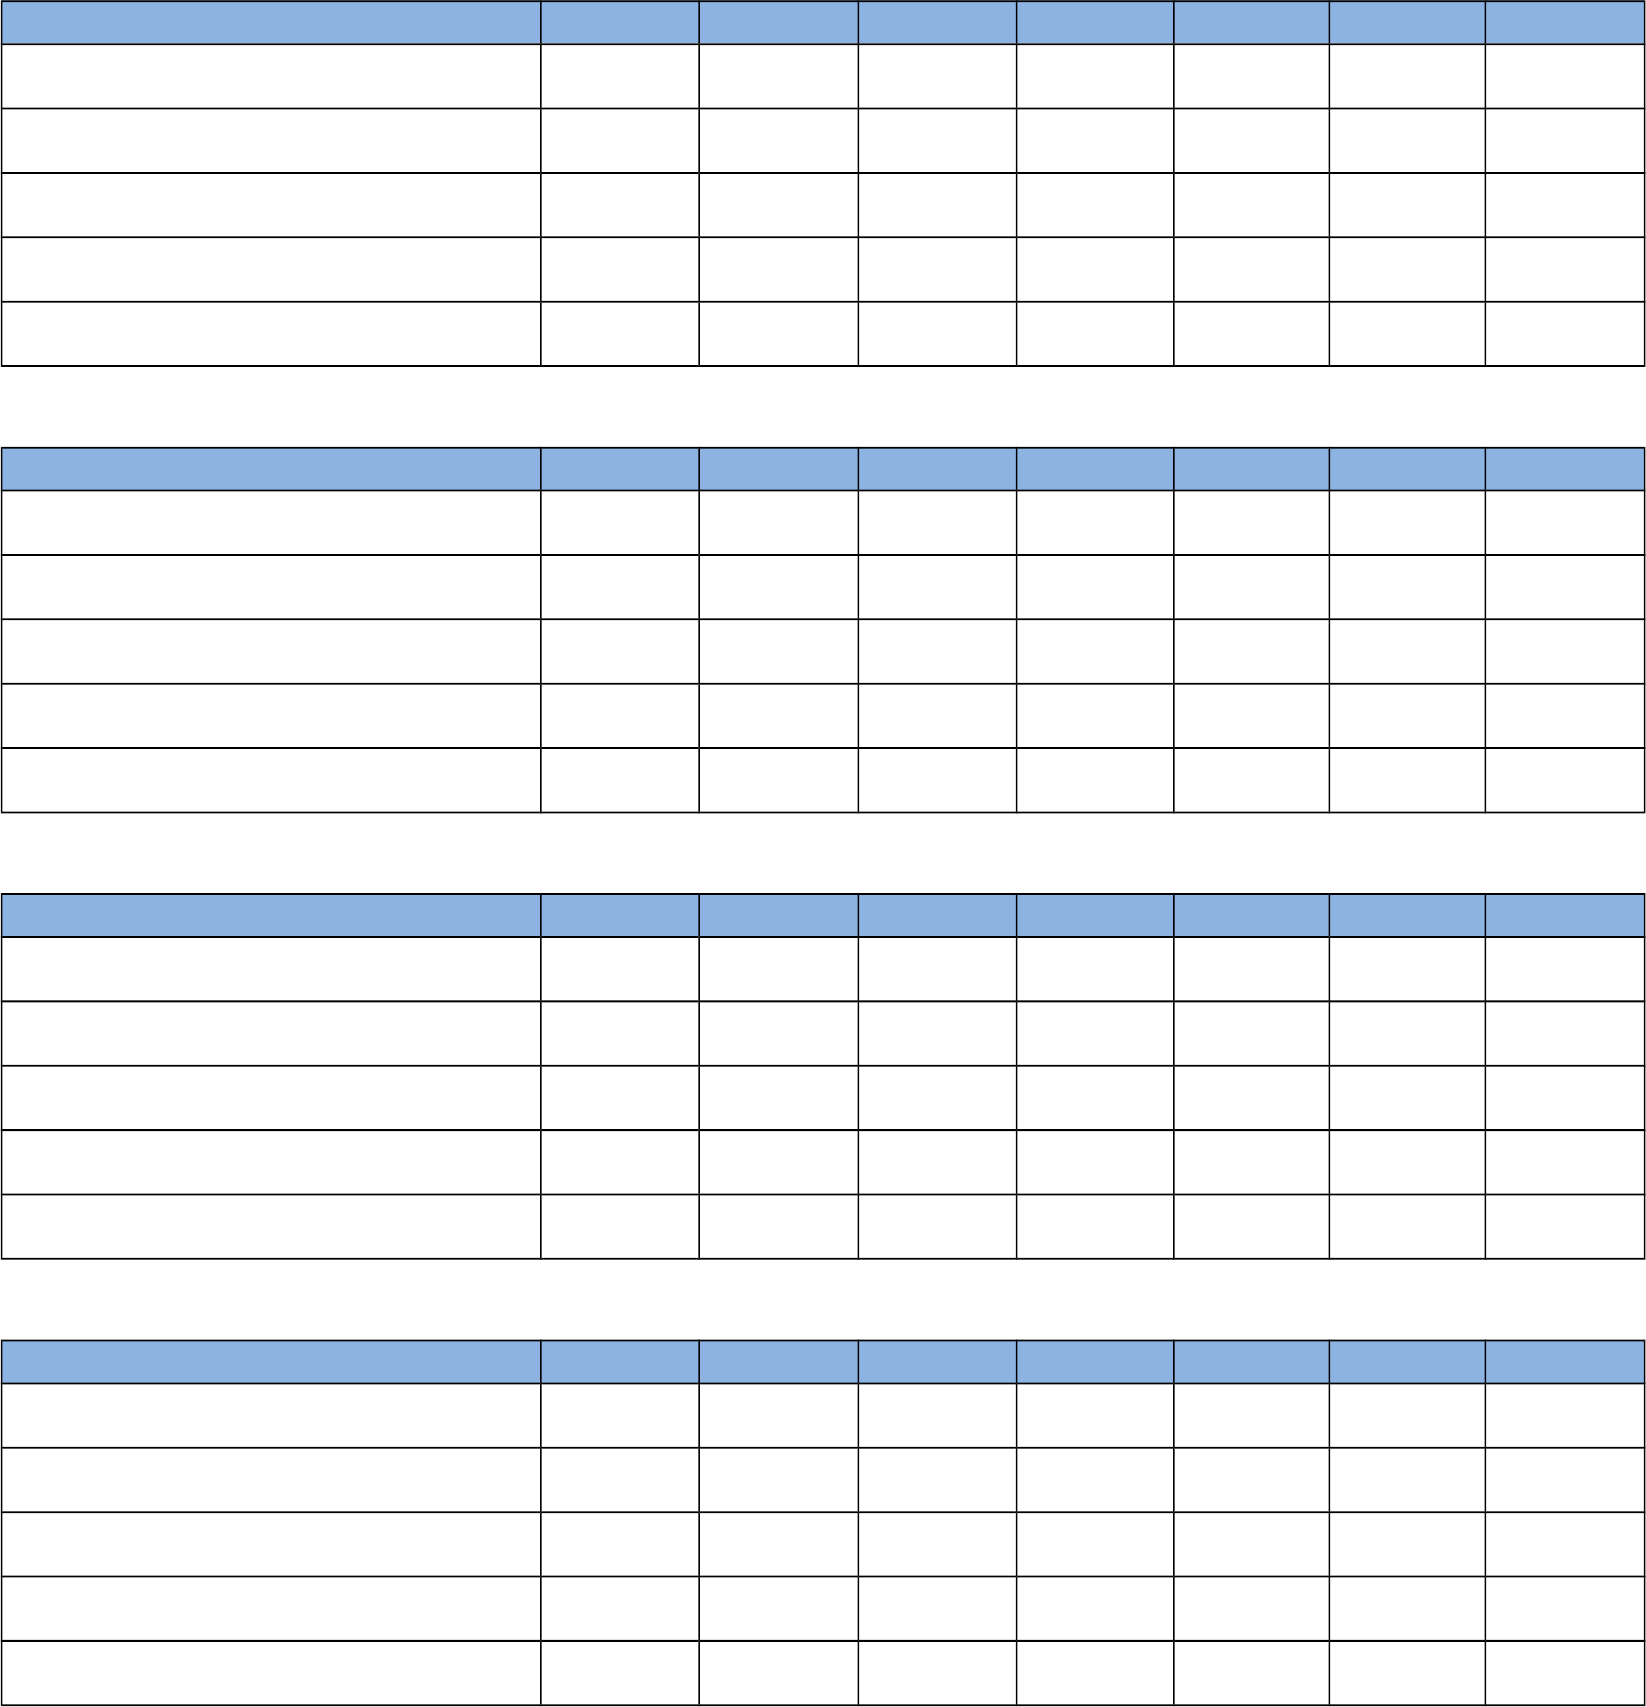 Blank Weekly Kids Chore List Chart Free Download